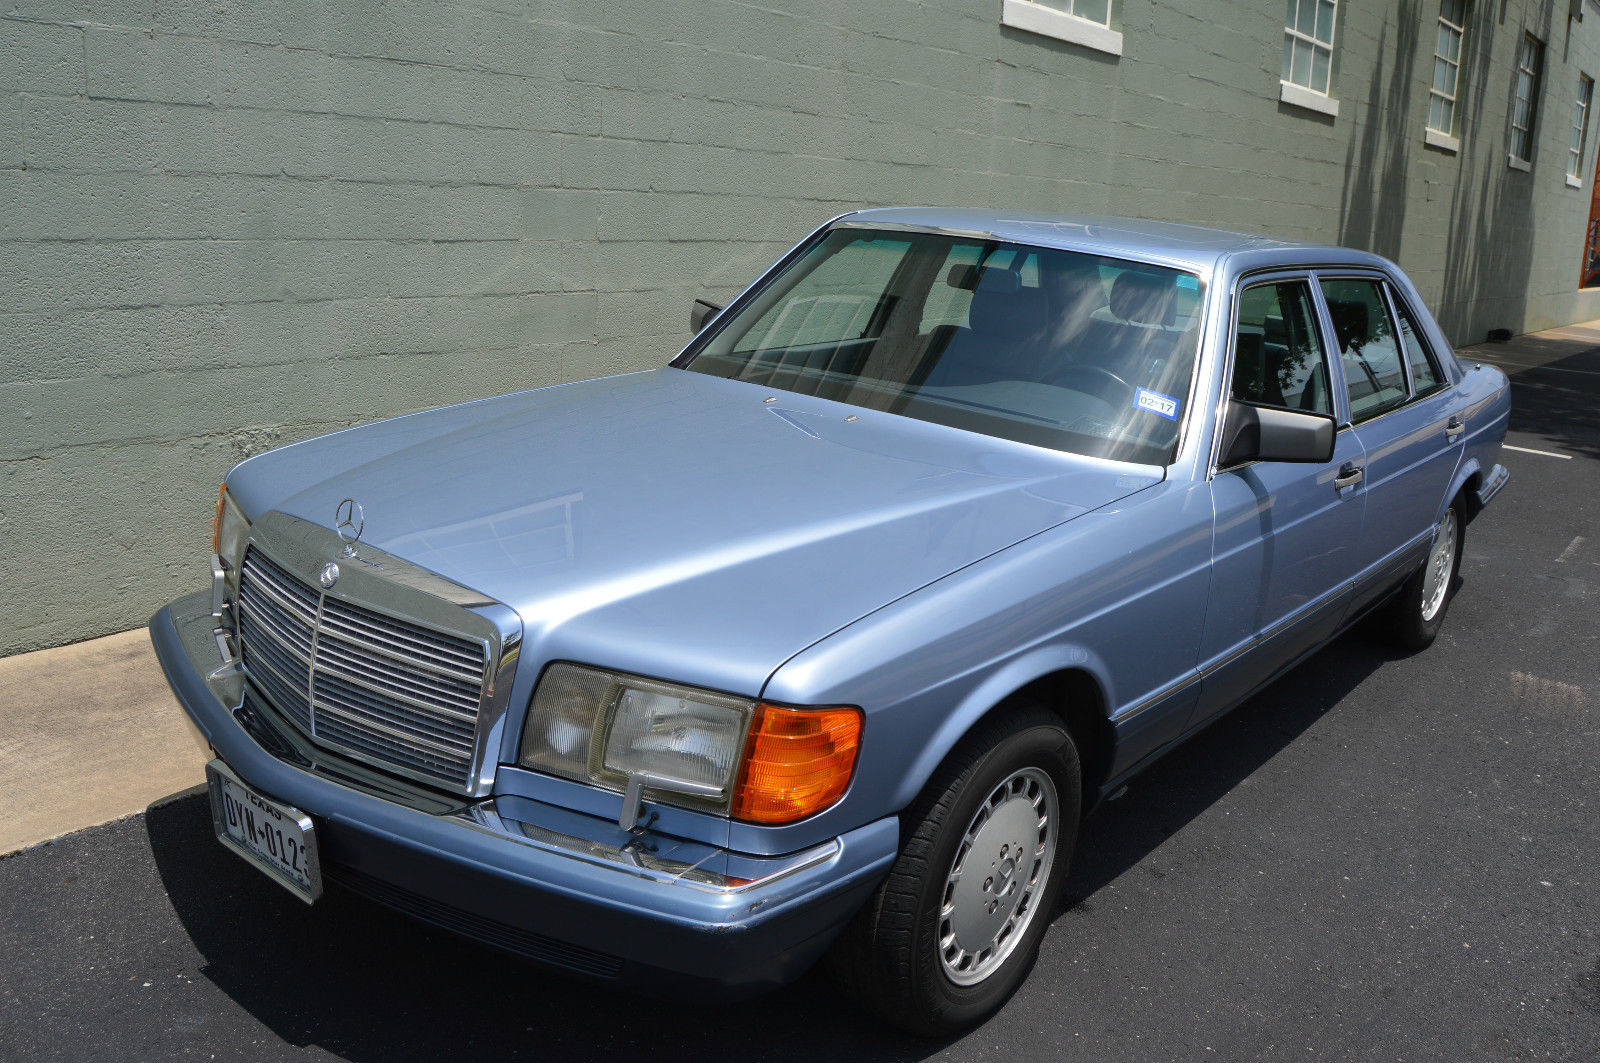 Daily turismo auction watch 1991 mercedes benz 420sel s for 1991 mercedes benz 420sel